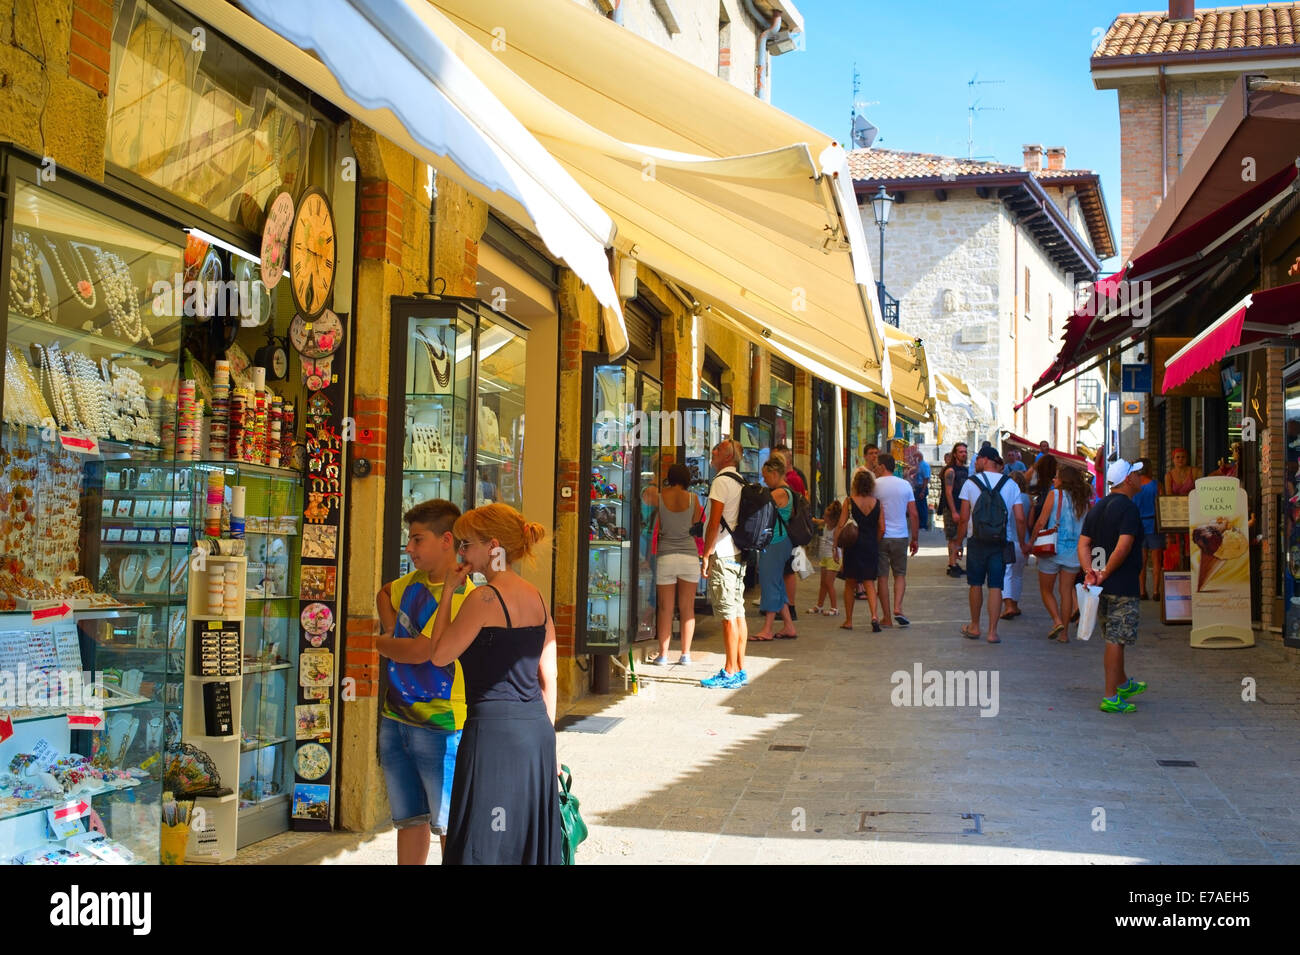 Tourists at the street of Old Town of San Marino. Tourism in San Marino contributes approximately - Stock Image